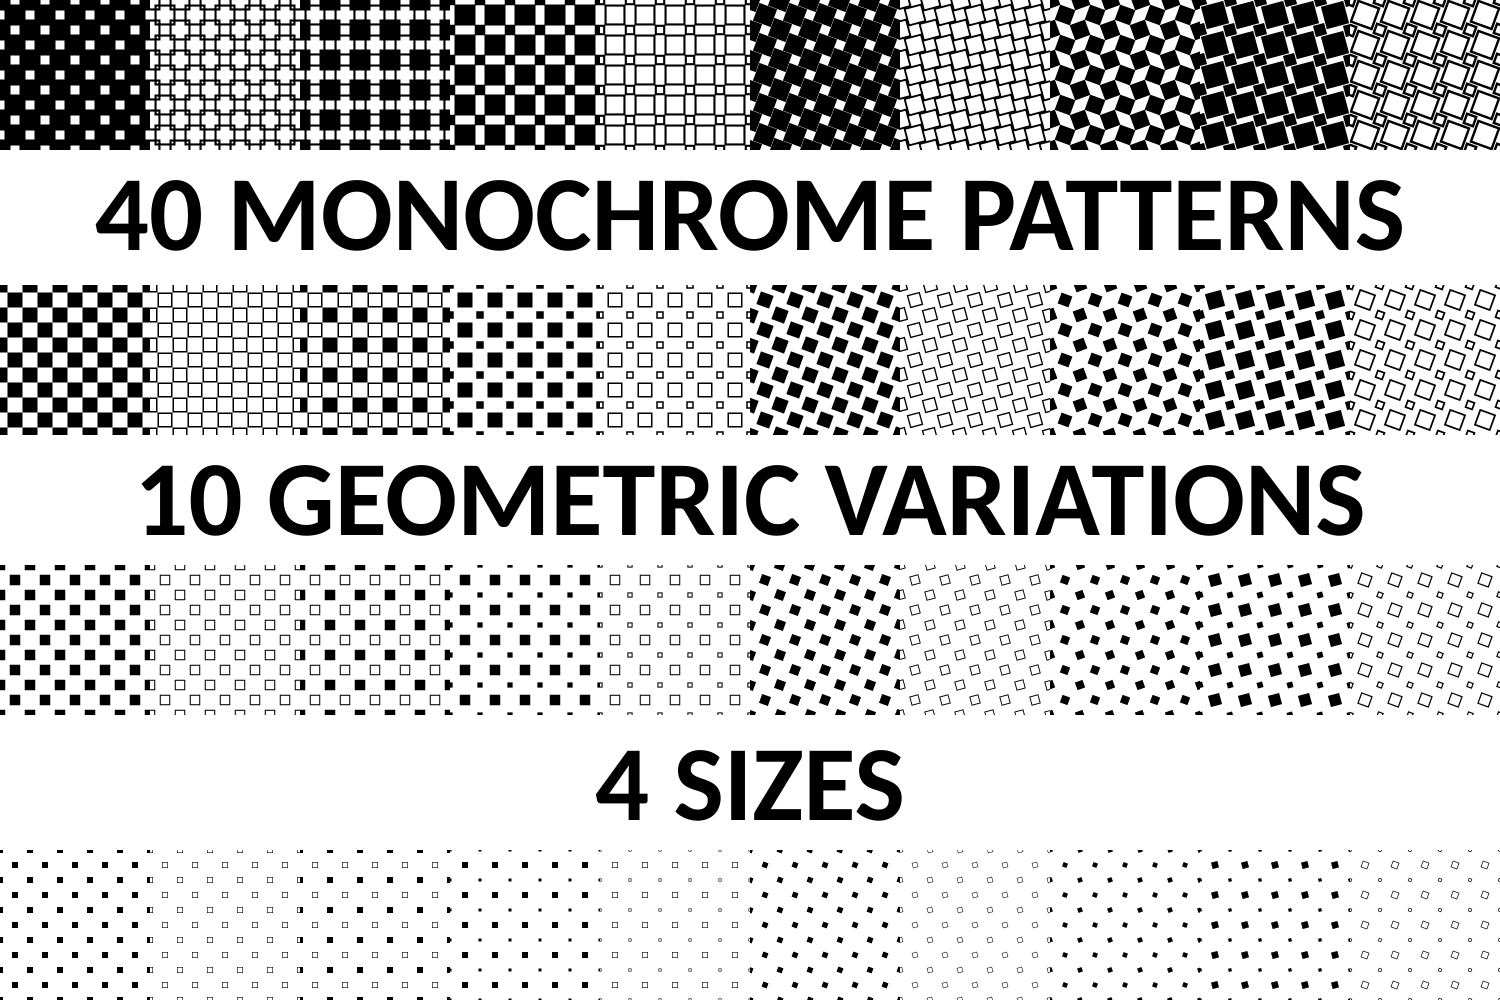 40 Seamless Square Patterns AI, EPS, JPG 5000x5000 example image 3